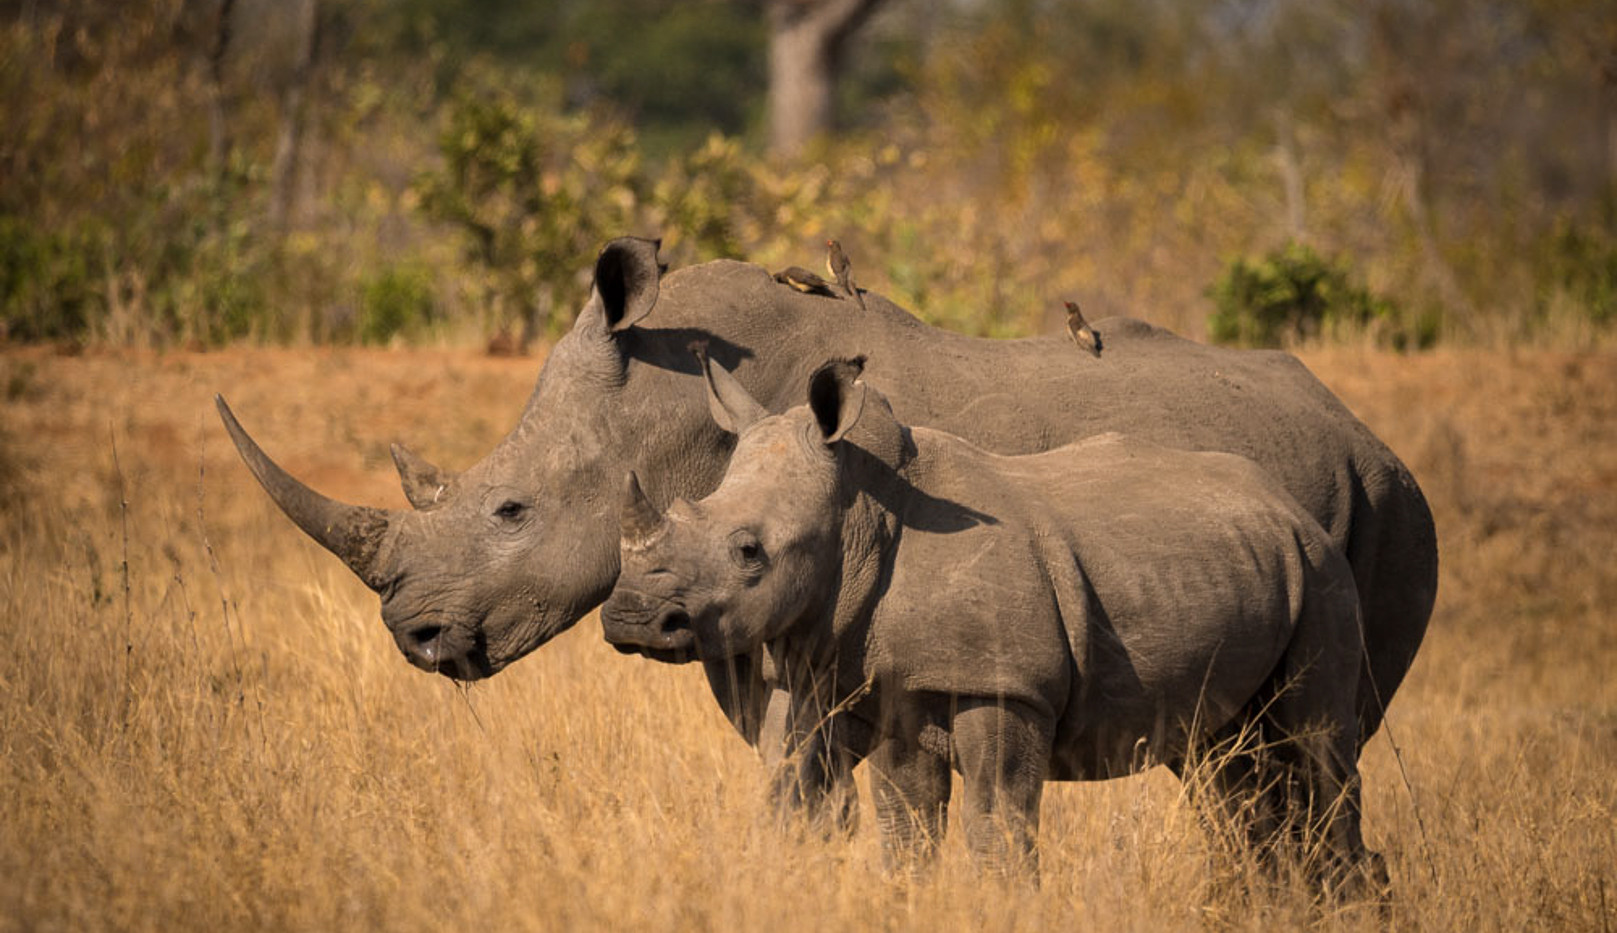 White rhino with juvenile calf